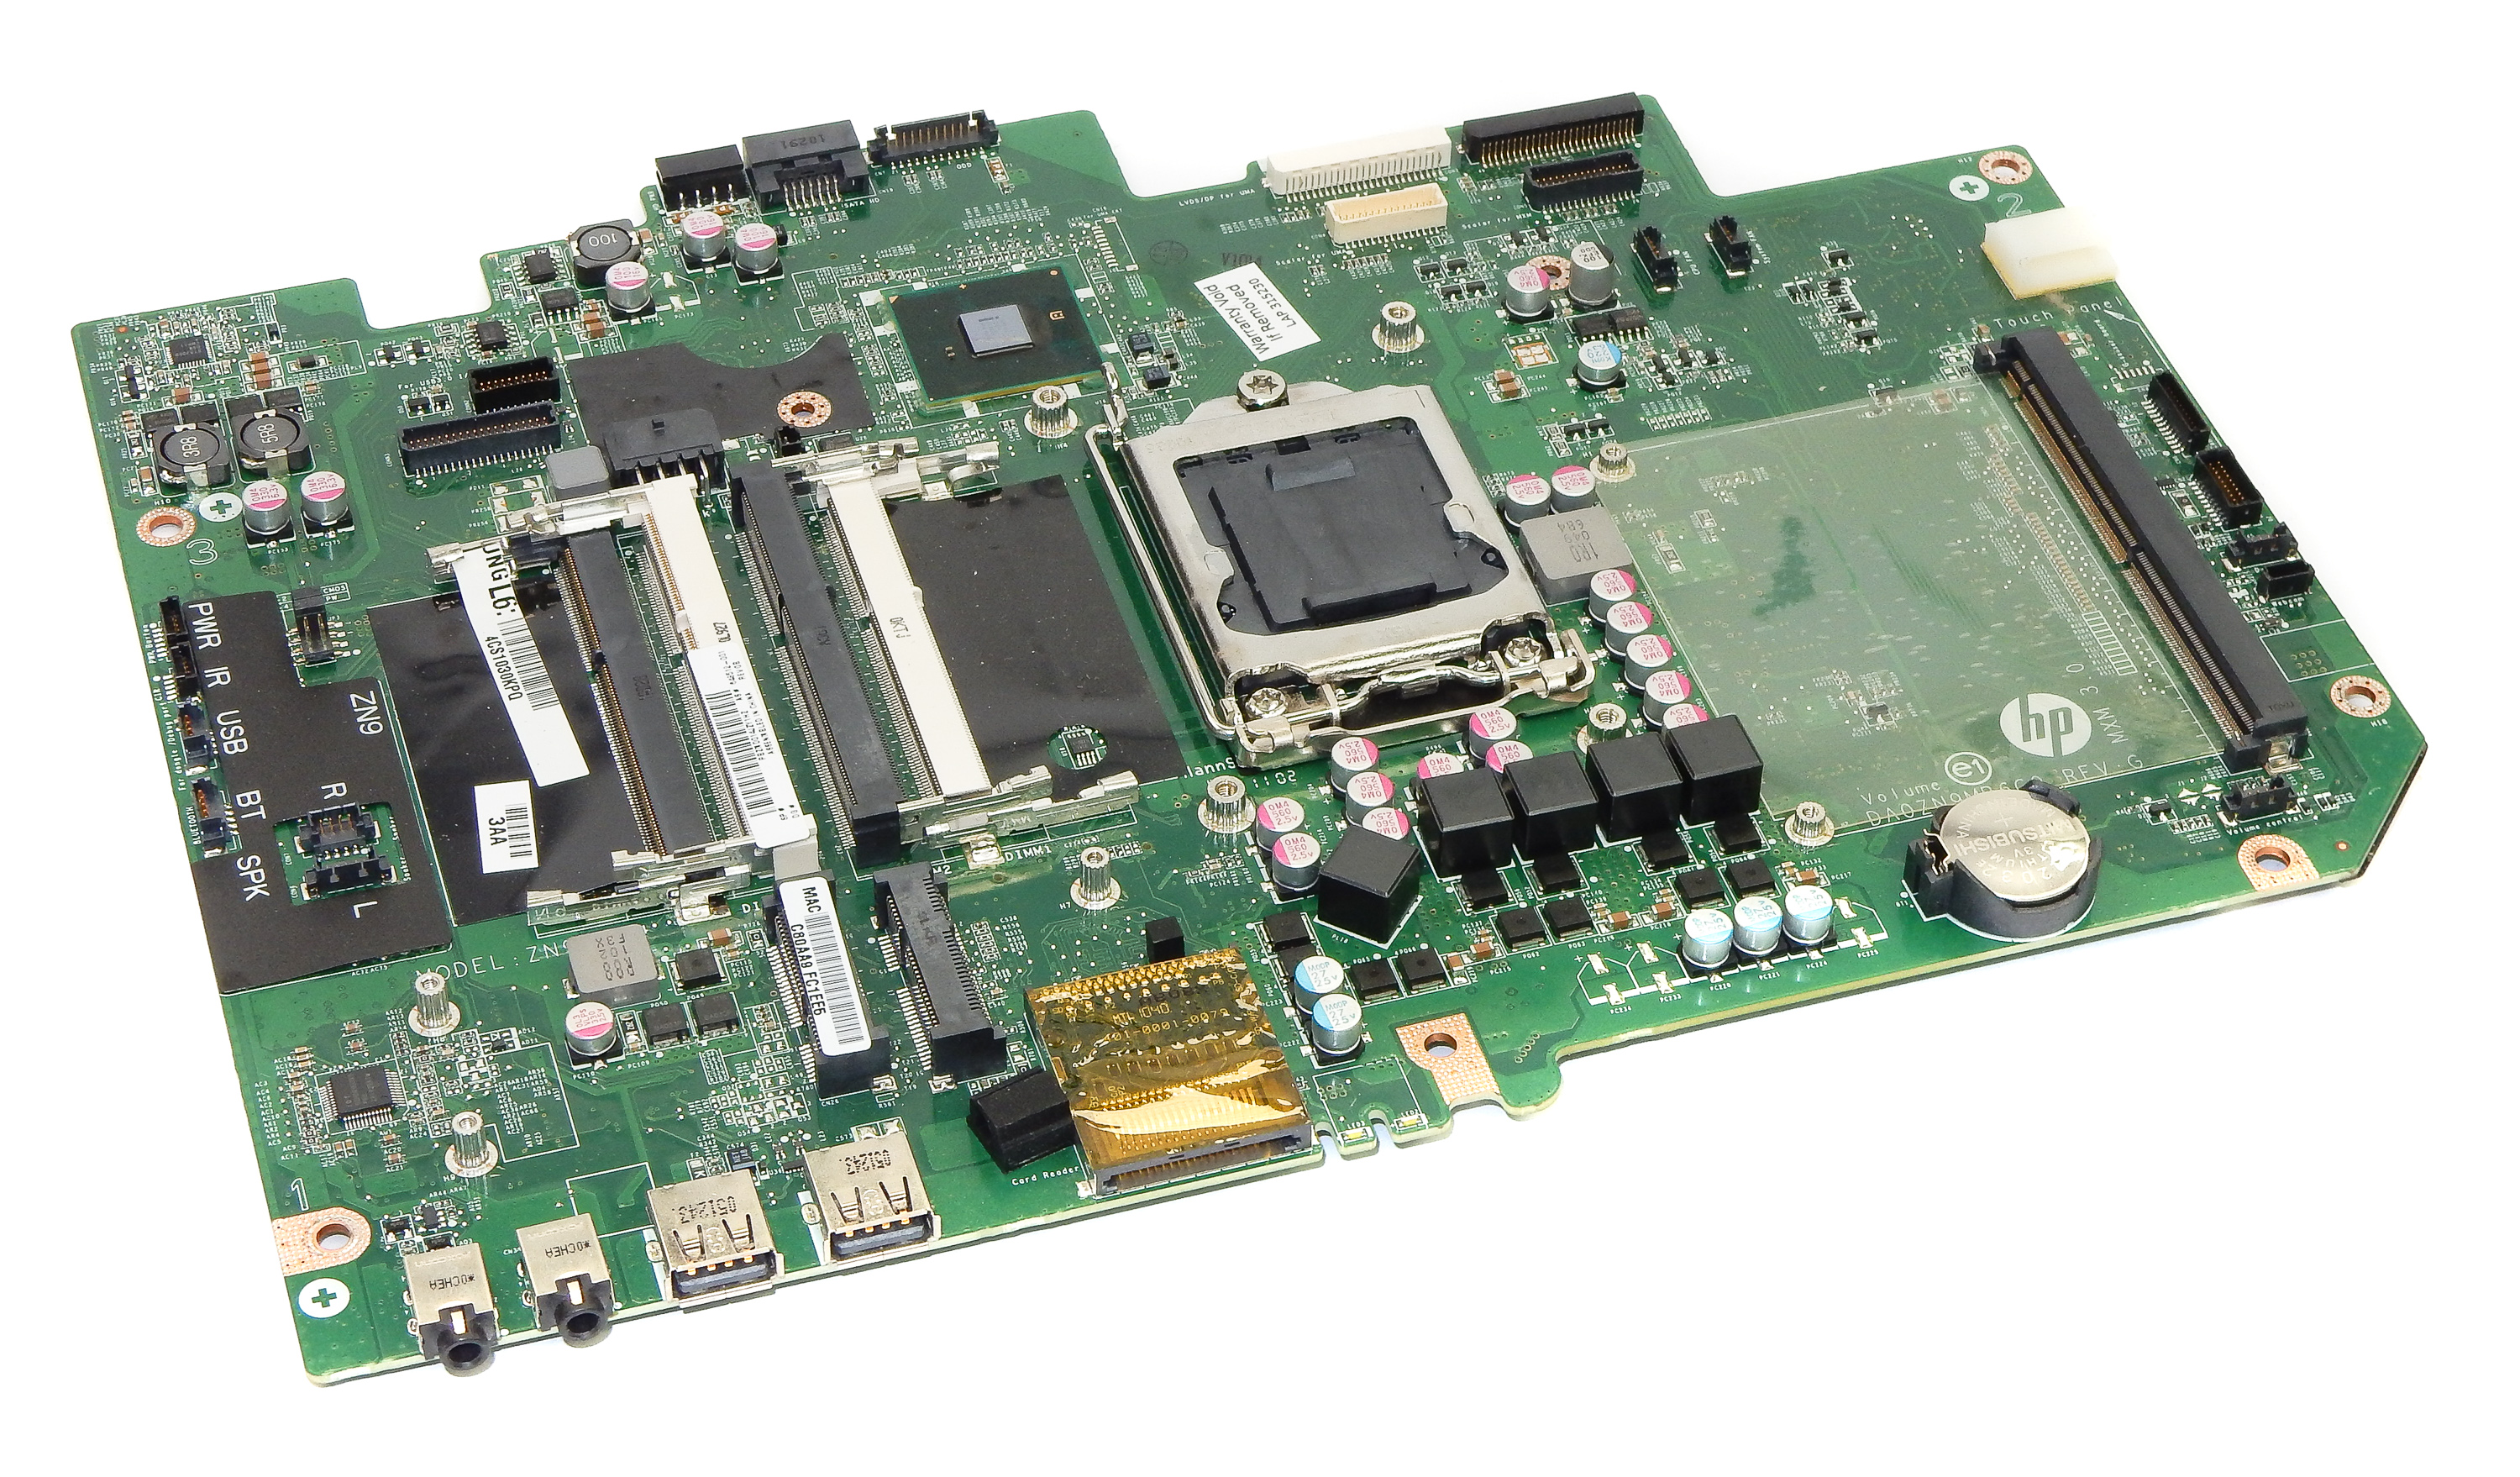 648512-001 HP Touchsmart 610 Intel System Motherboard